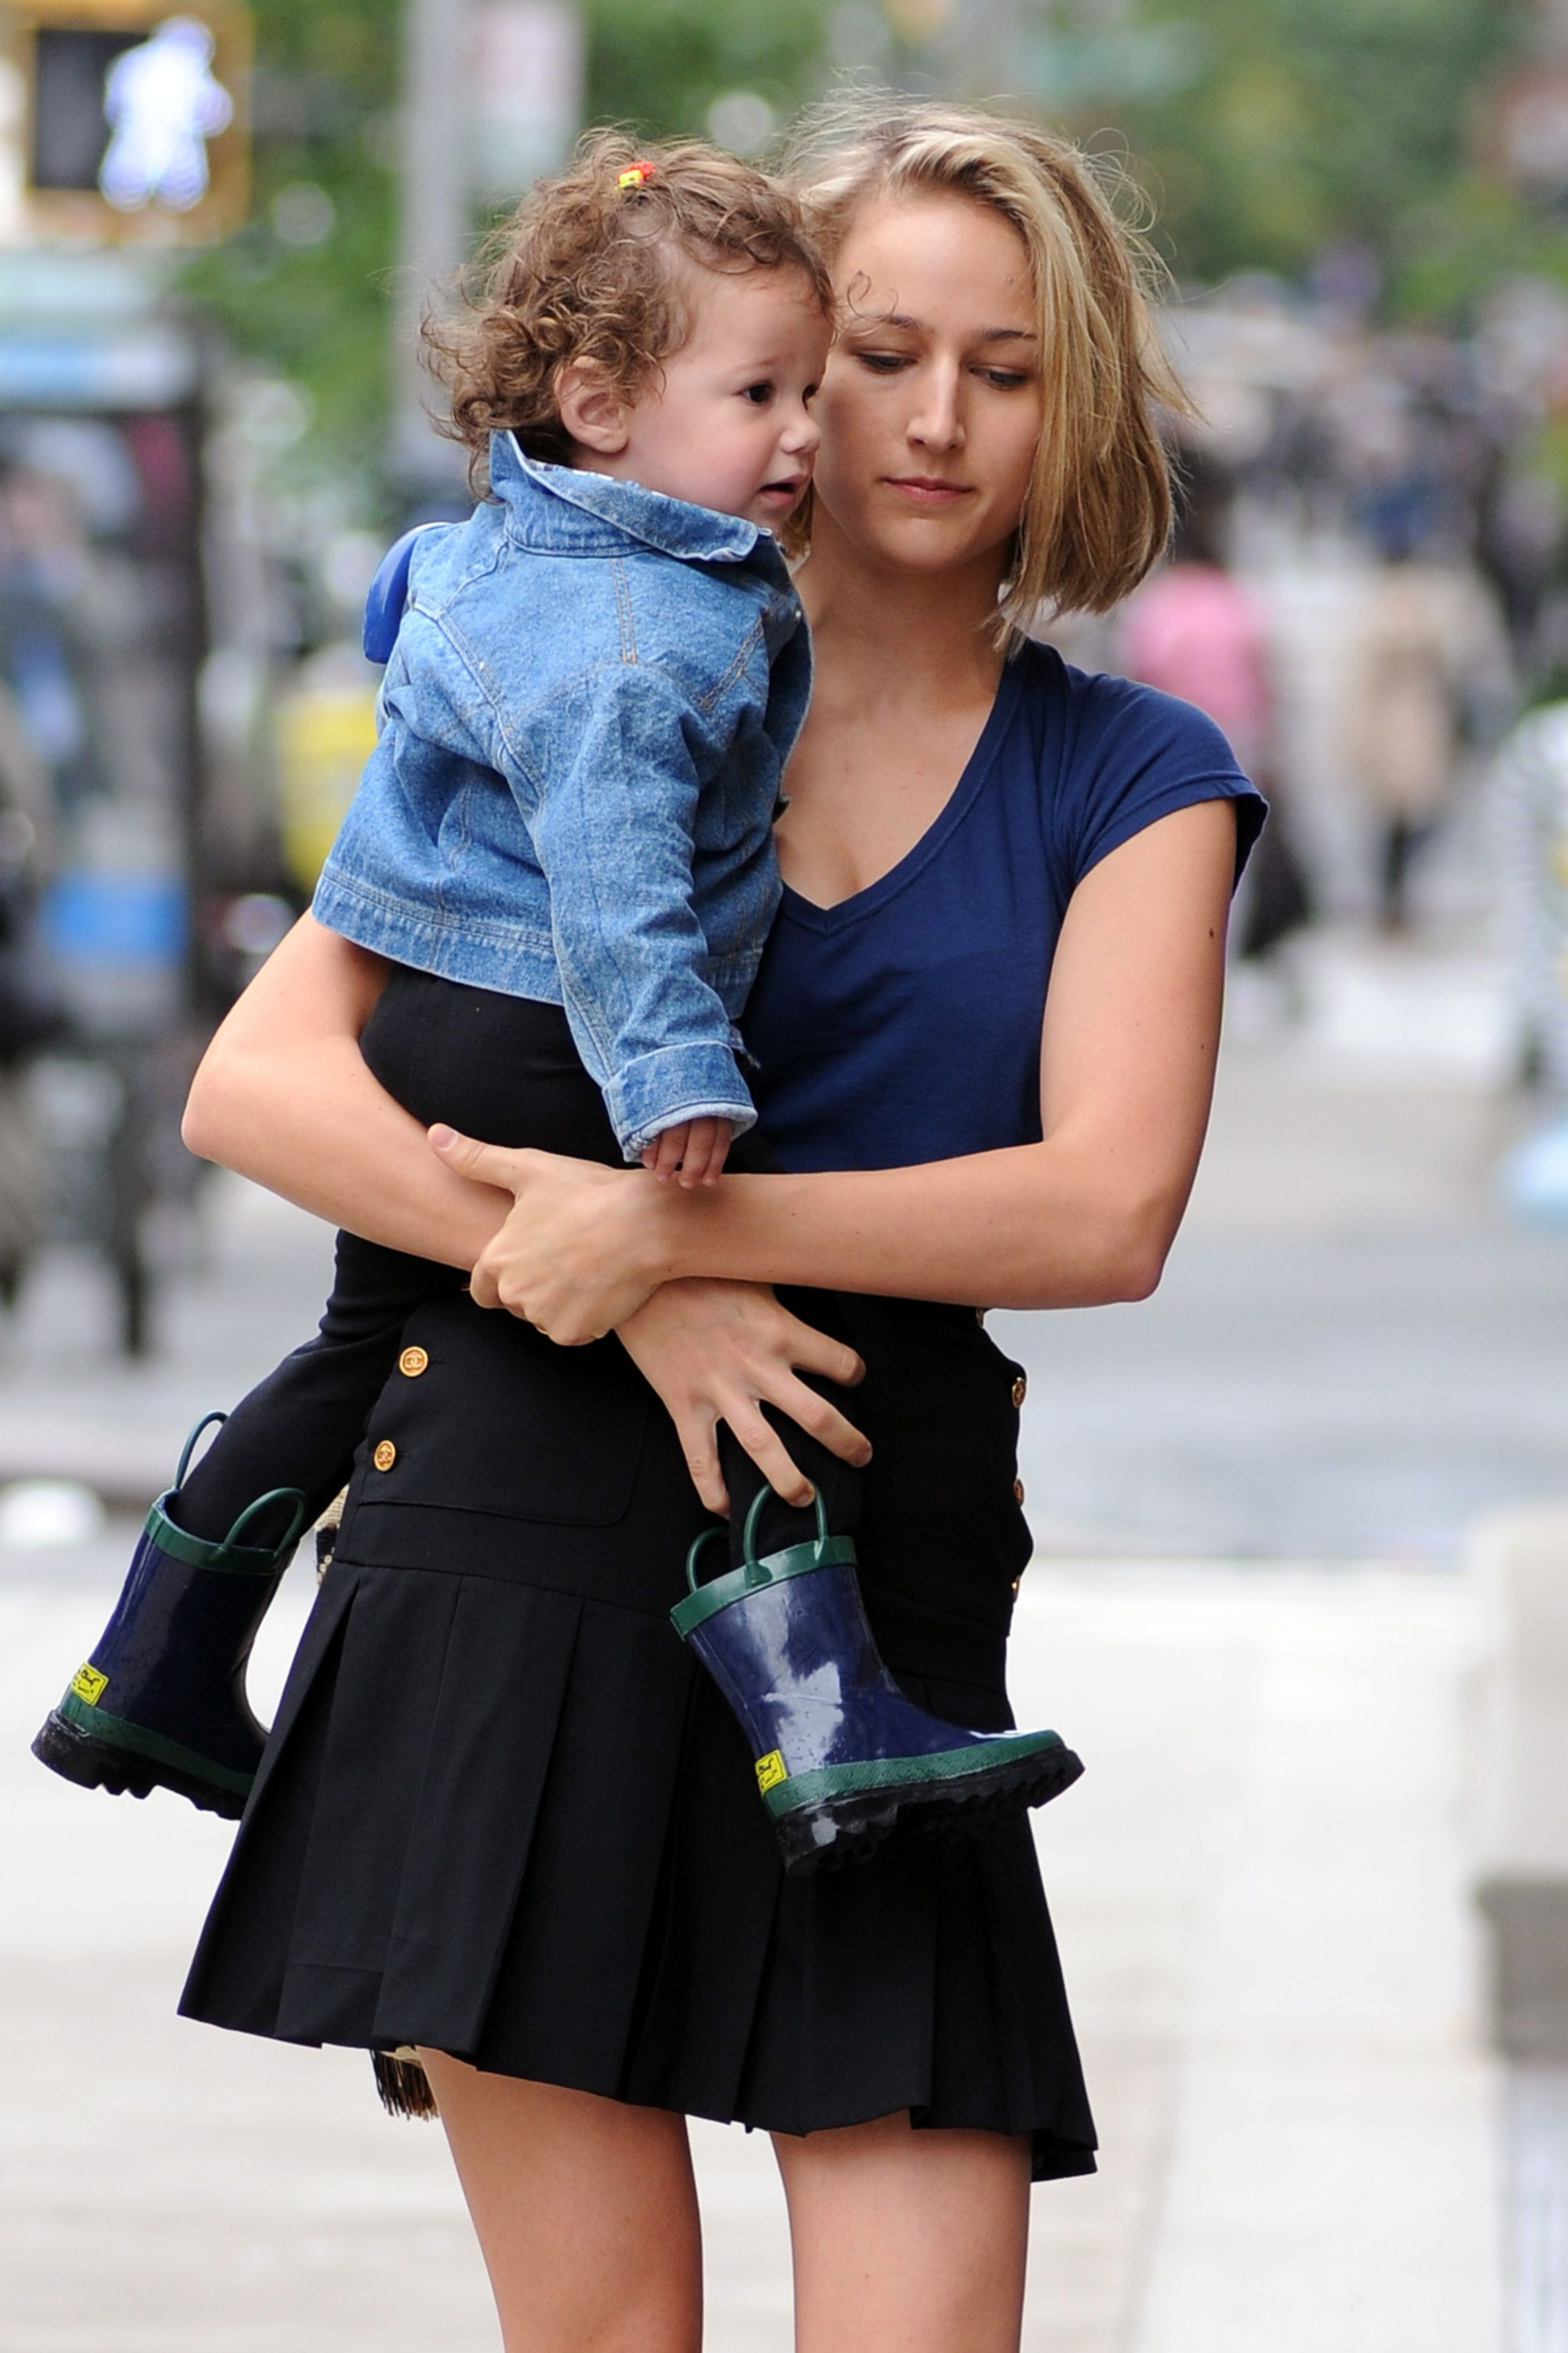 Leelee Sobieski Black Skirt Candids in New York